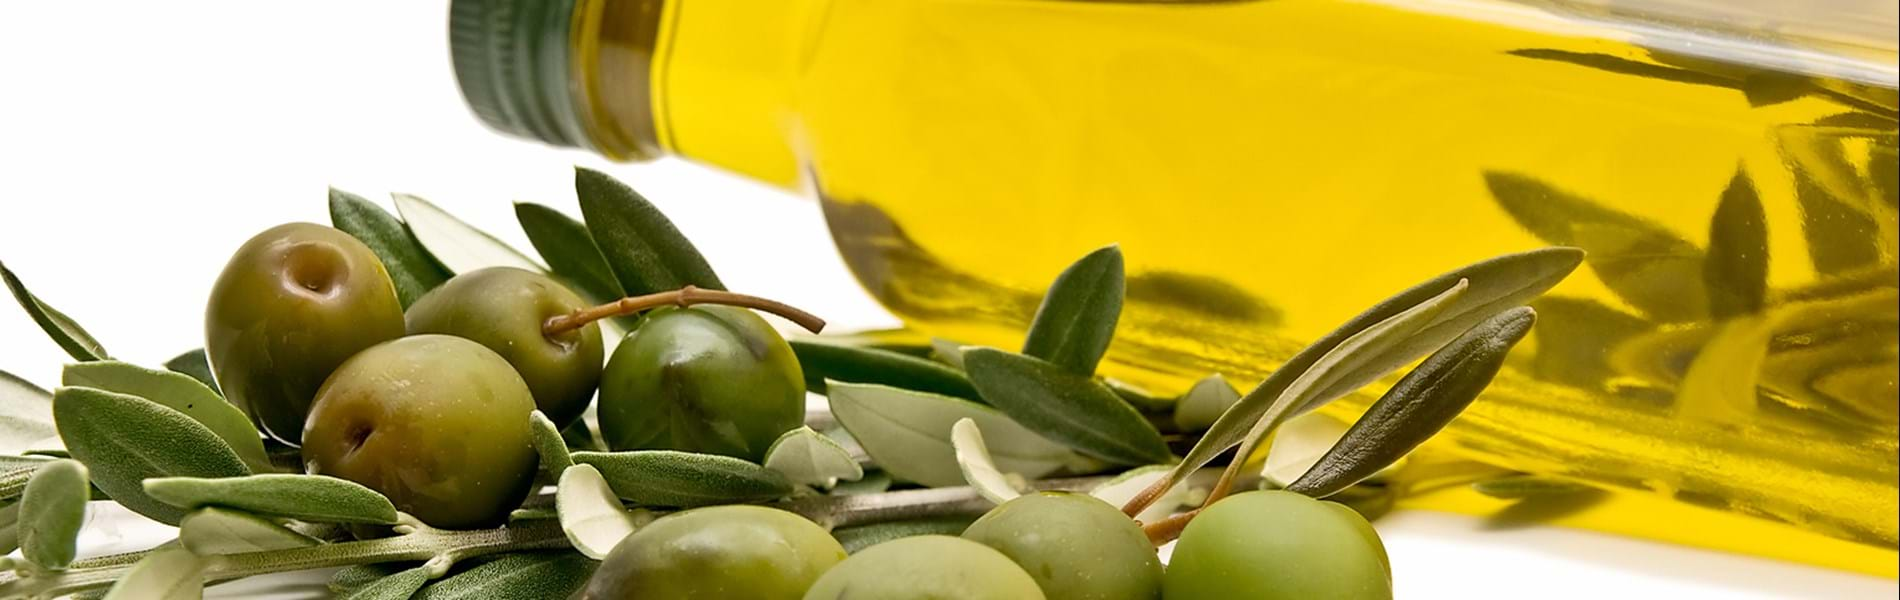 Tackling food fraud in the olive oil industry